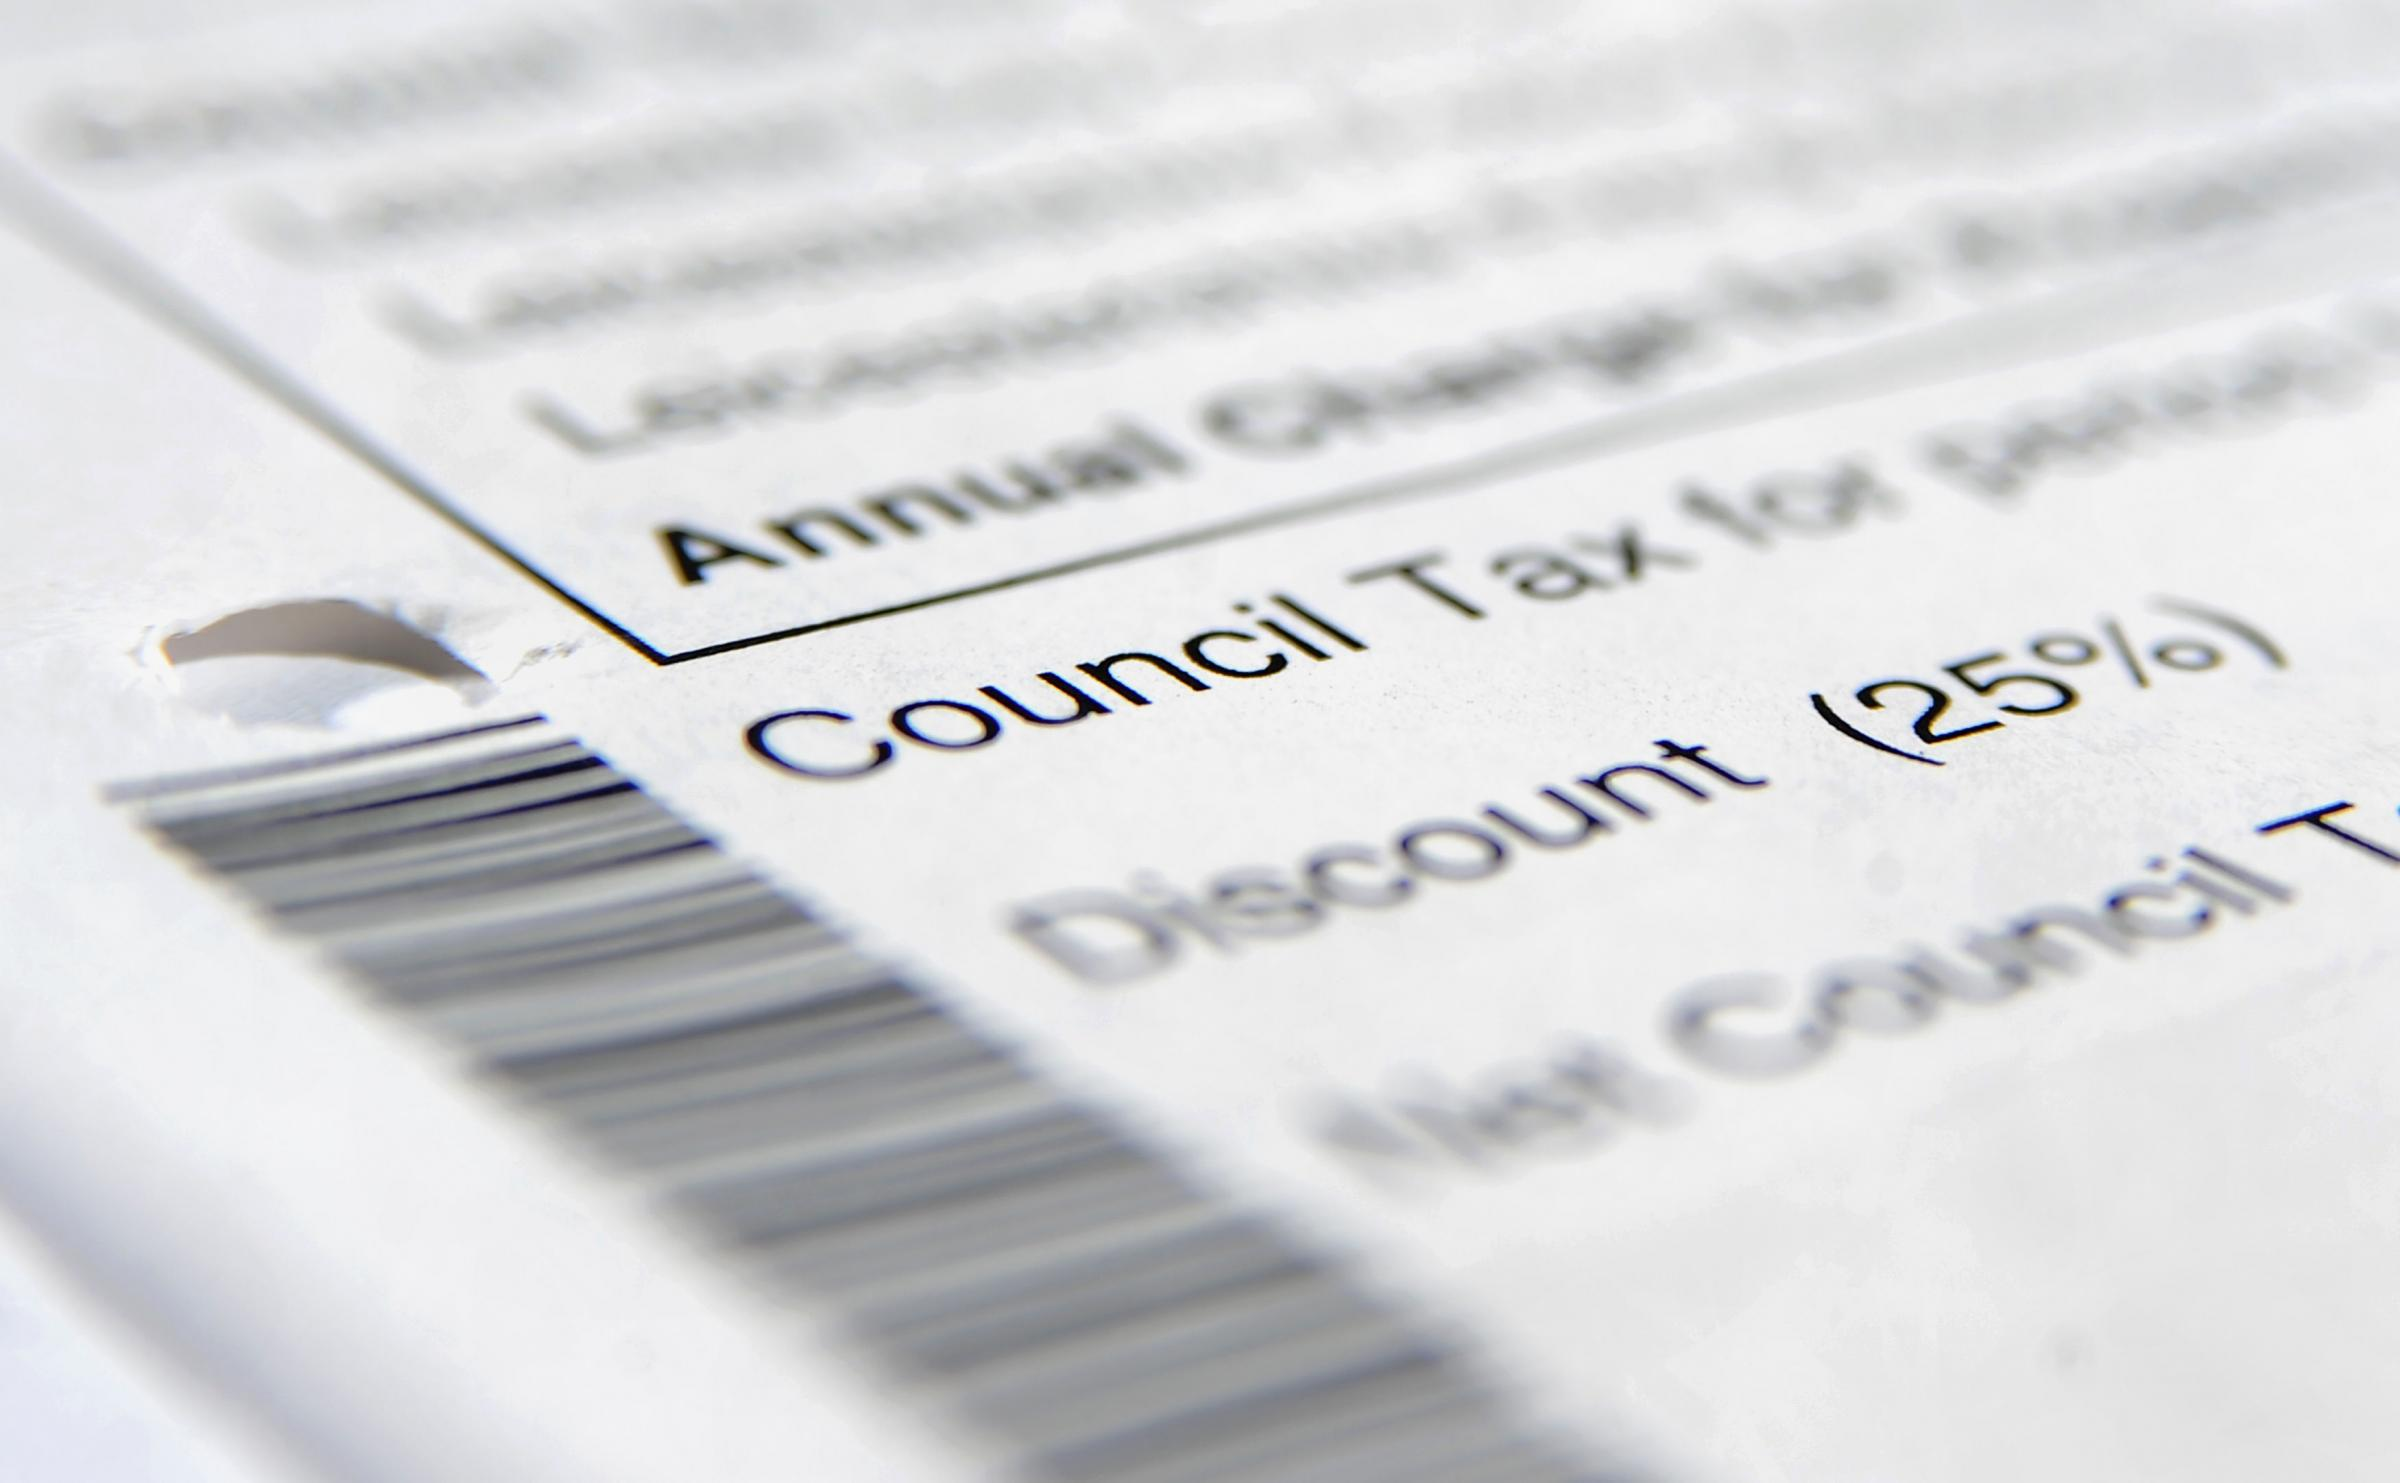 Cabinet discussed a proposal to increase council tax by 4.75 per cent